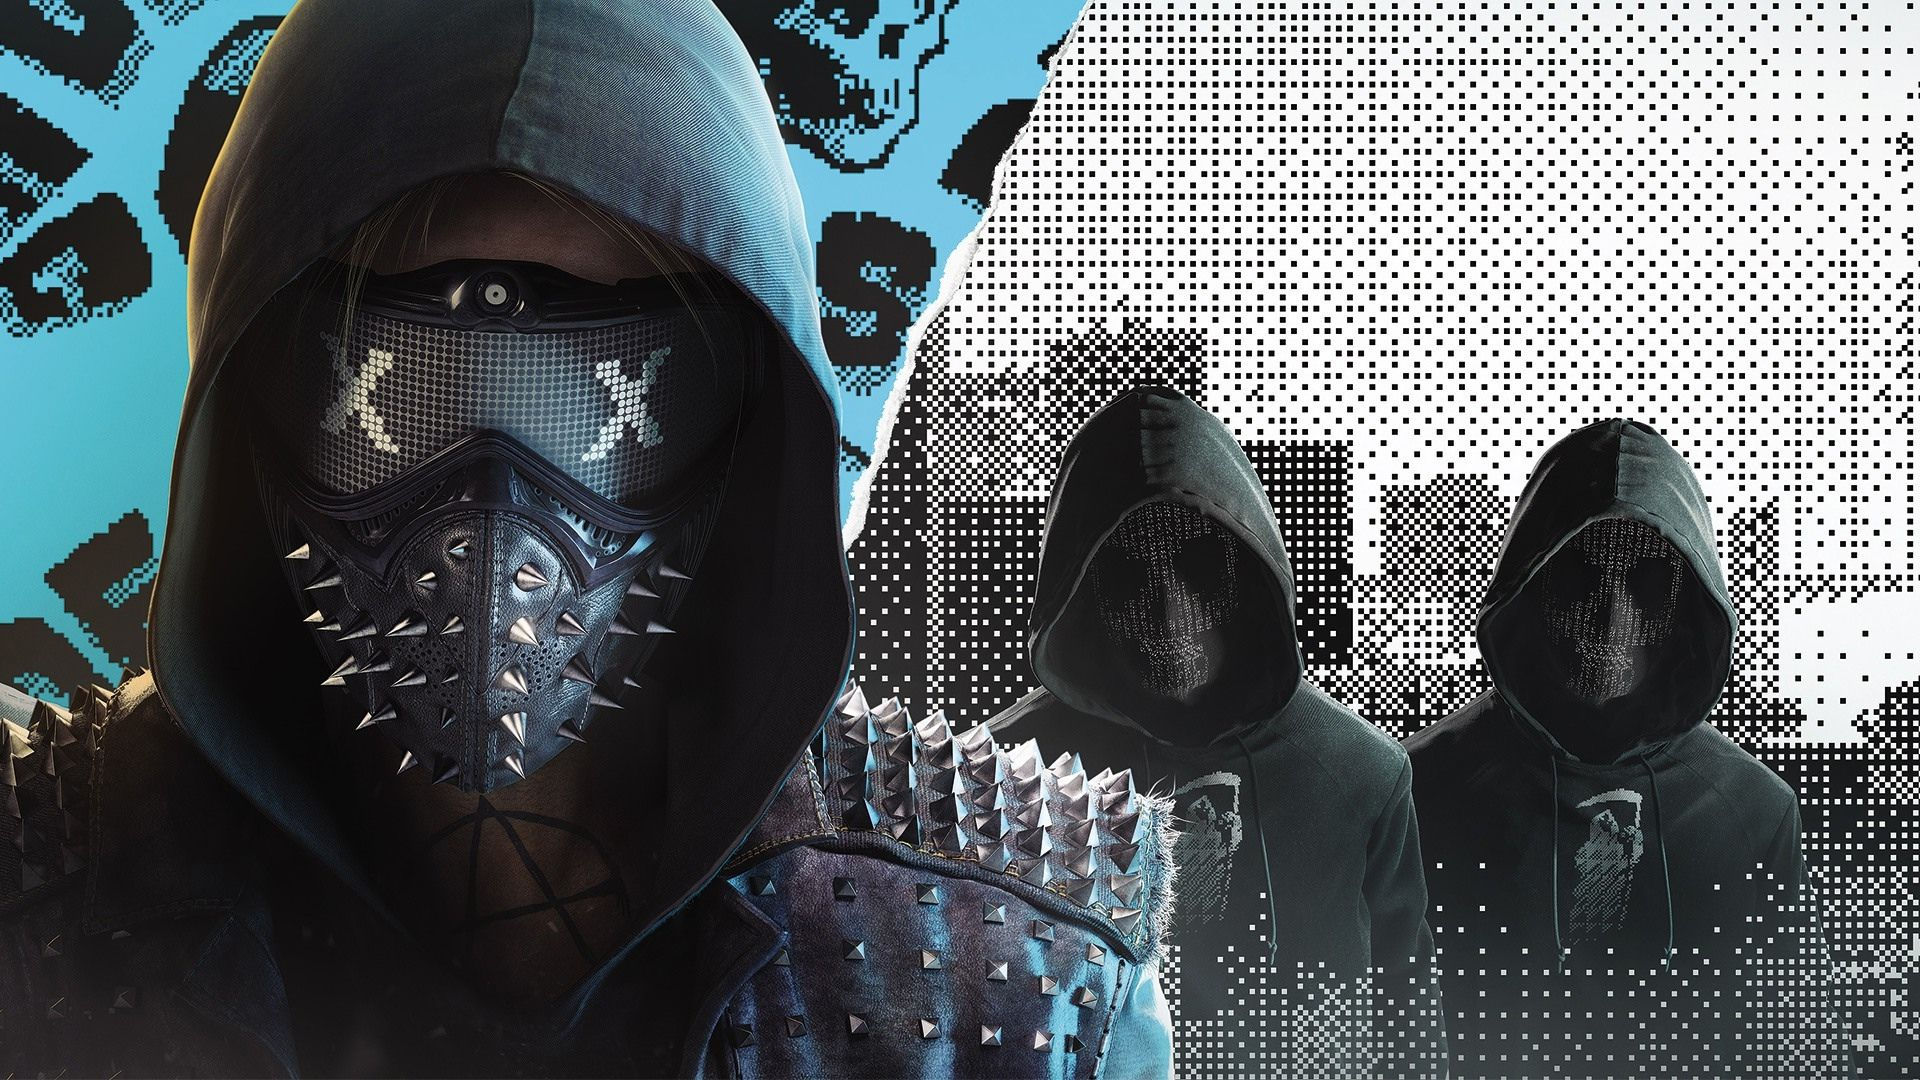 watch-dogs-2-pixel-art-pack-dlc-pc-steam-cd-key-satin-al-durmaplay.jpg